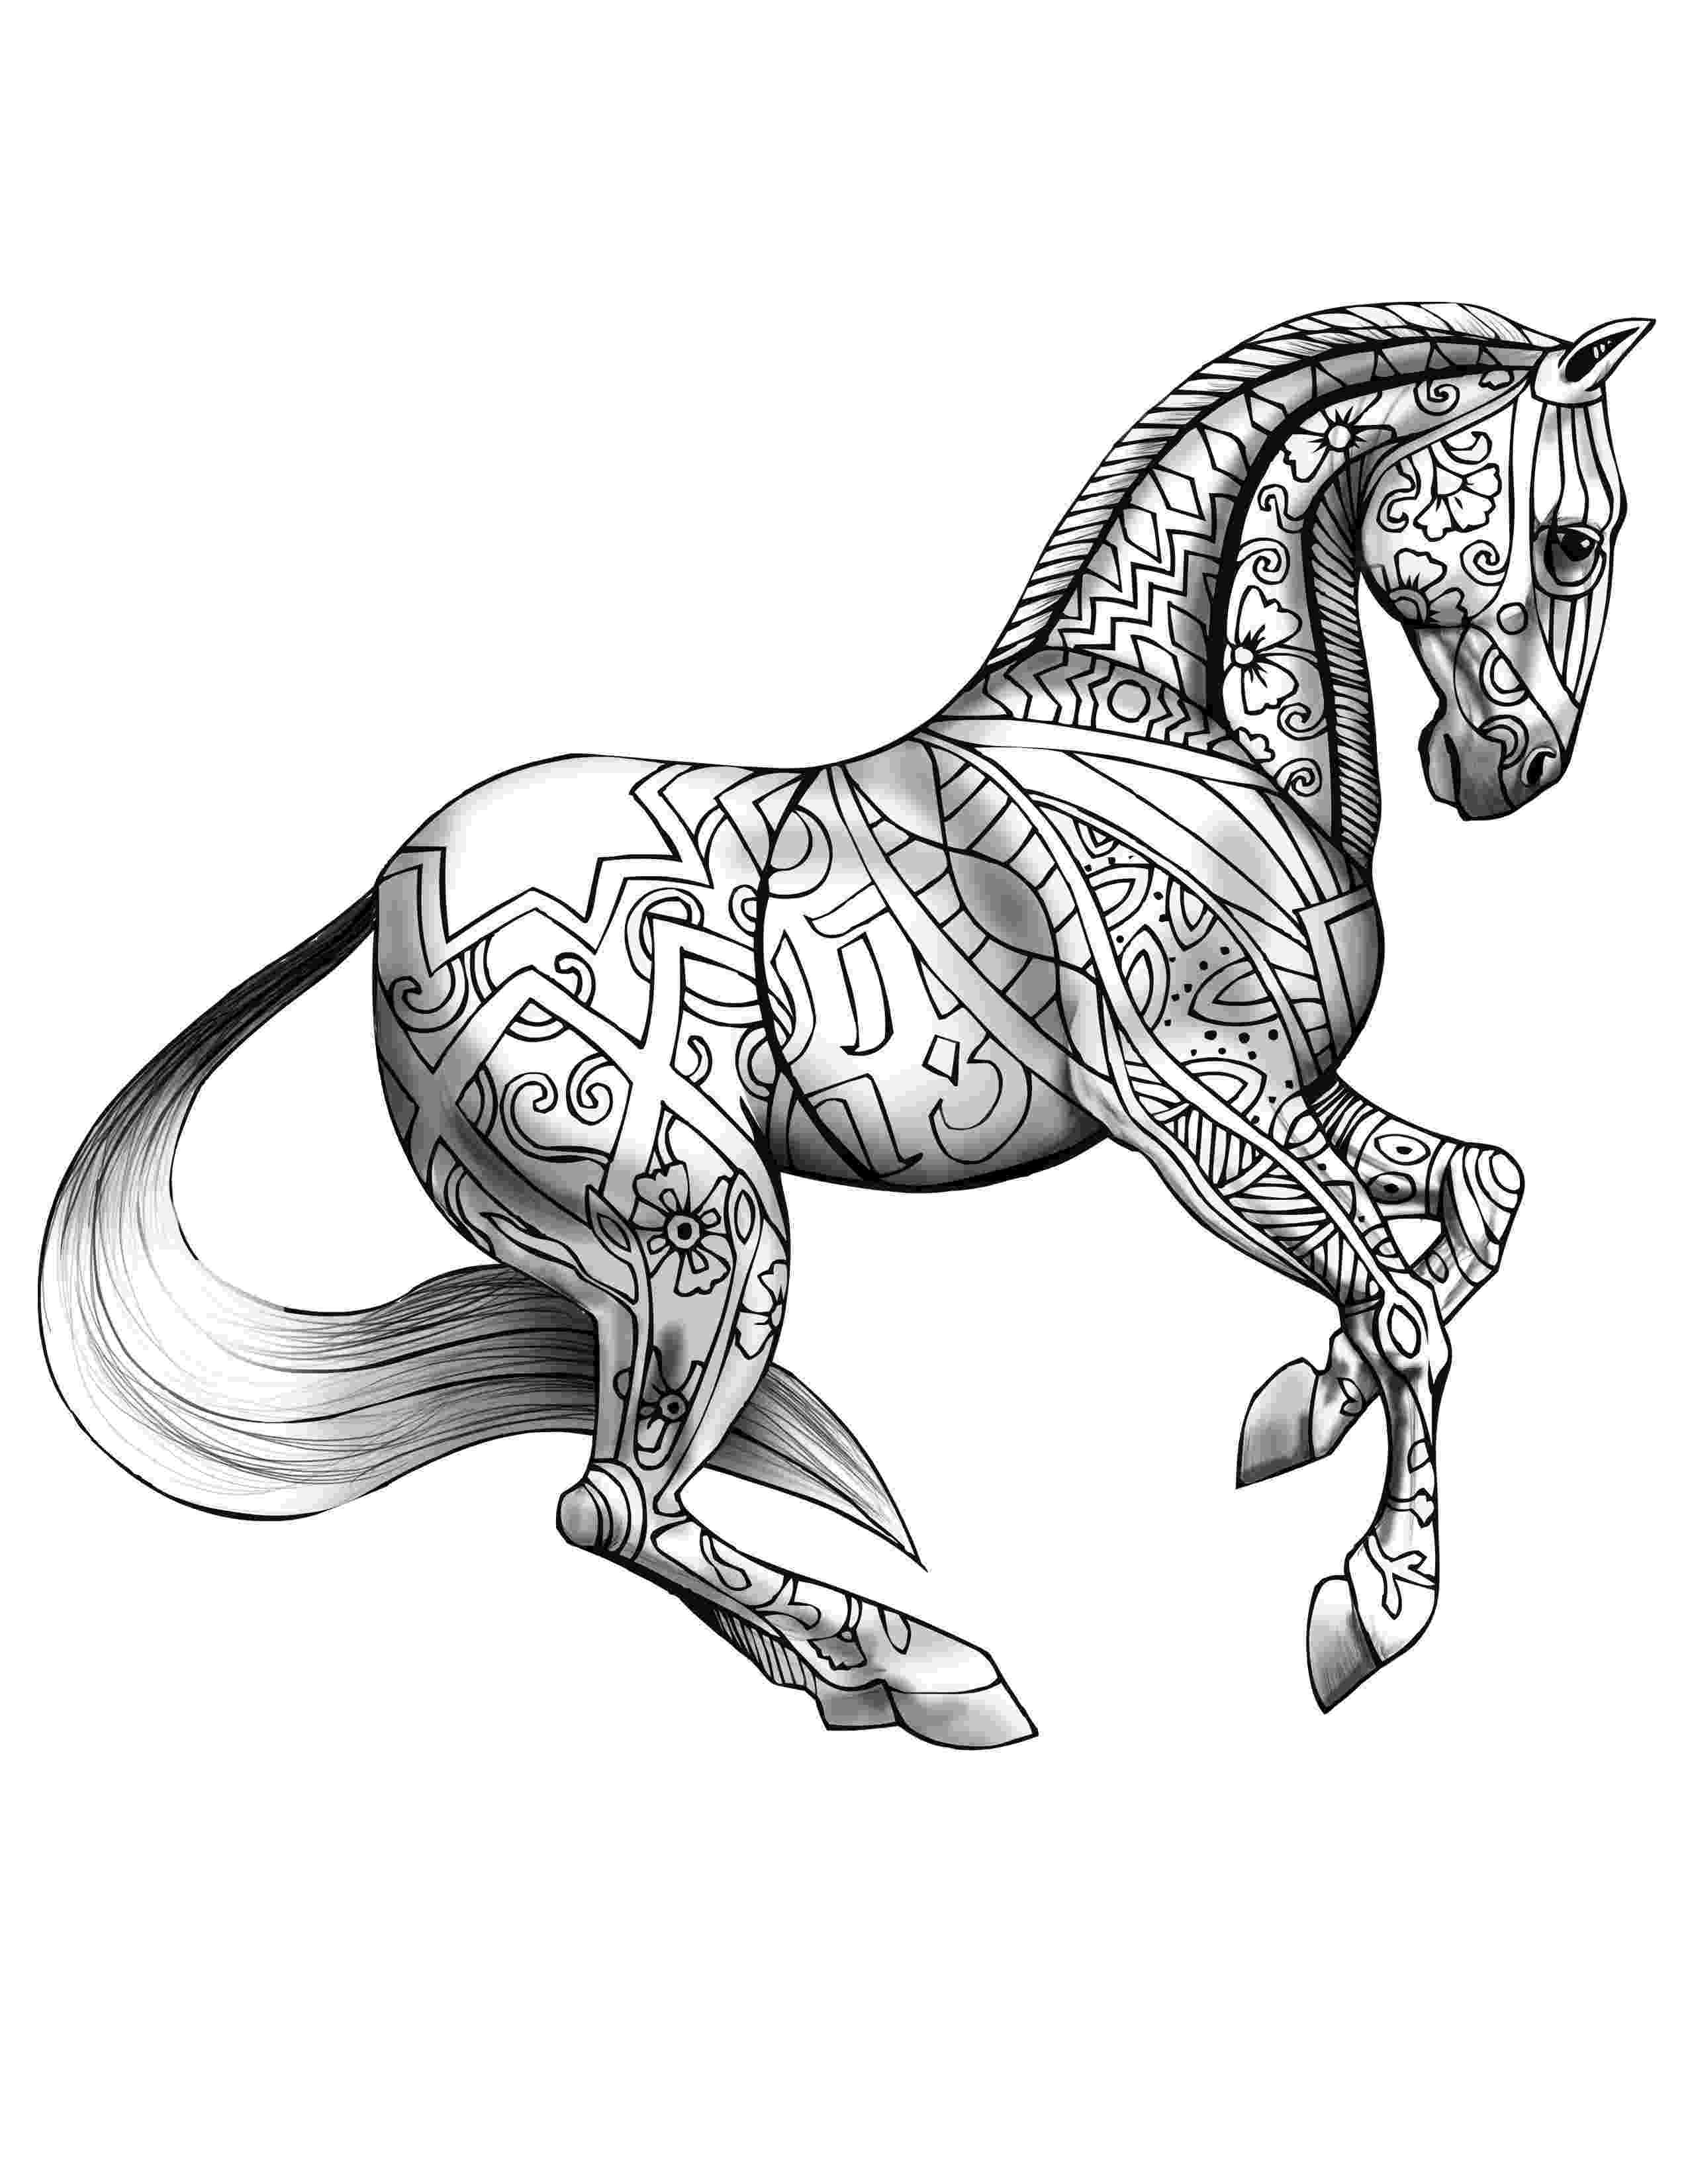 horse picture to color cartoon horse coloring page h m coloring pages horse picture to color